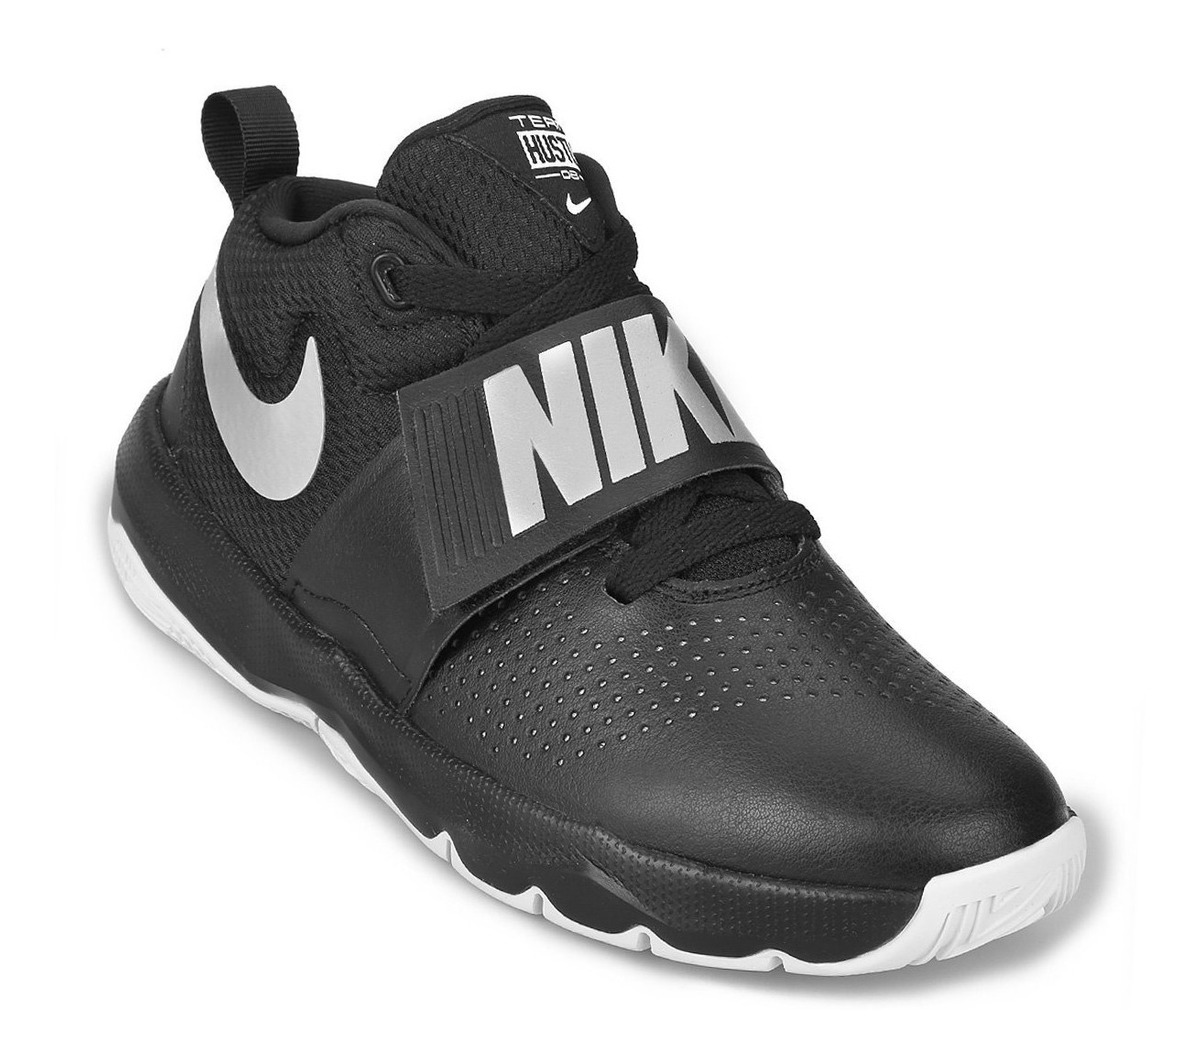 Zapatillas Nike Team Hustle 8 Infantil Negras